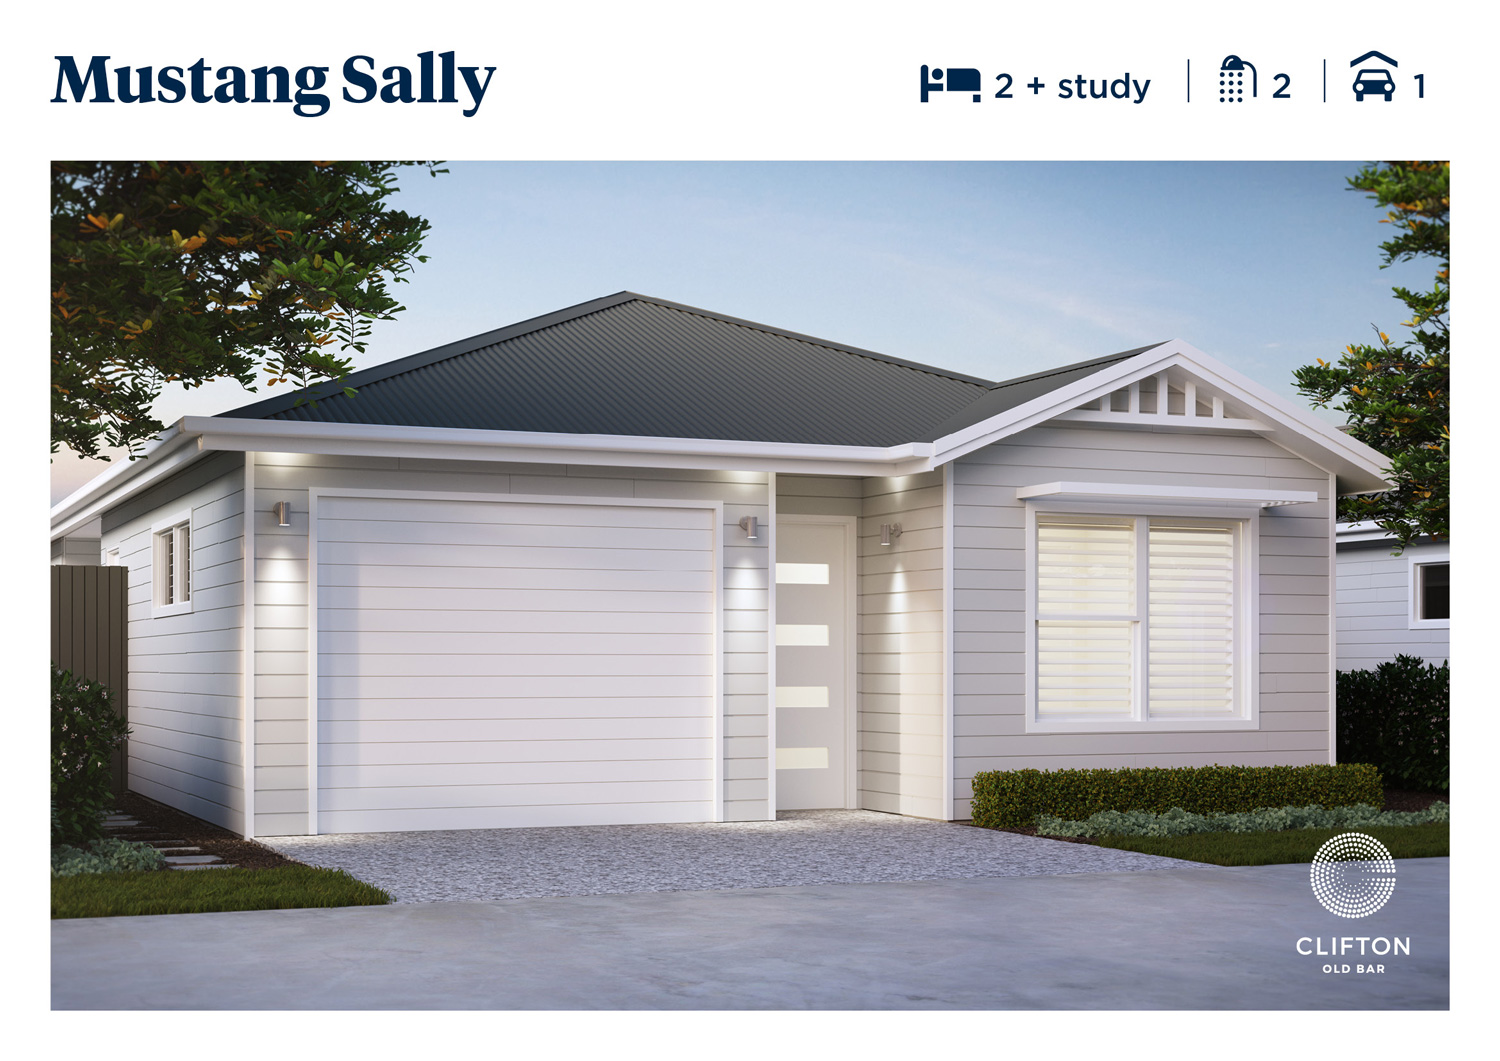 Mustang Sally 2bd + study home design at Clifton Old Bar